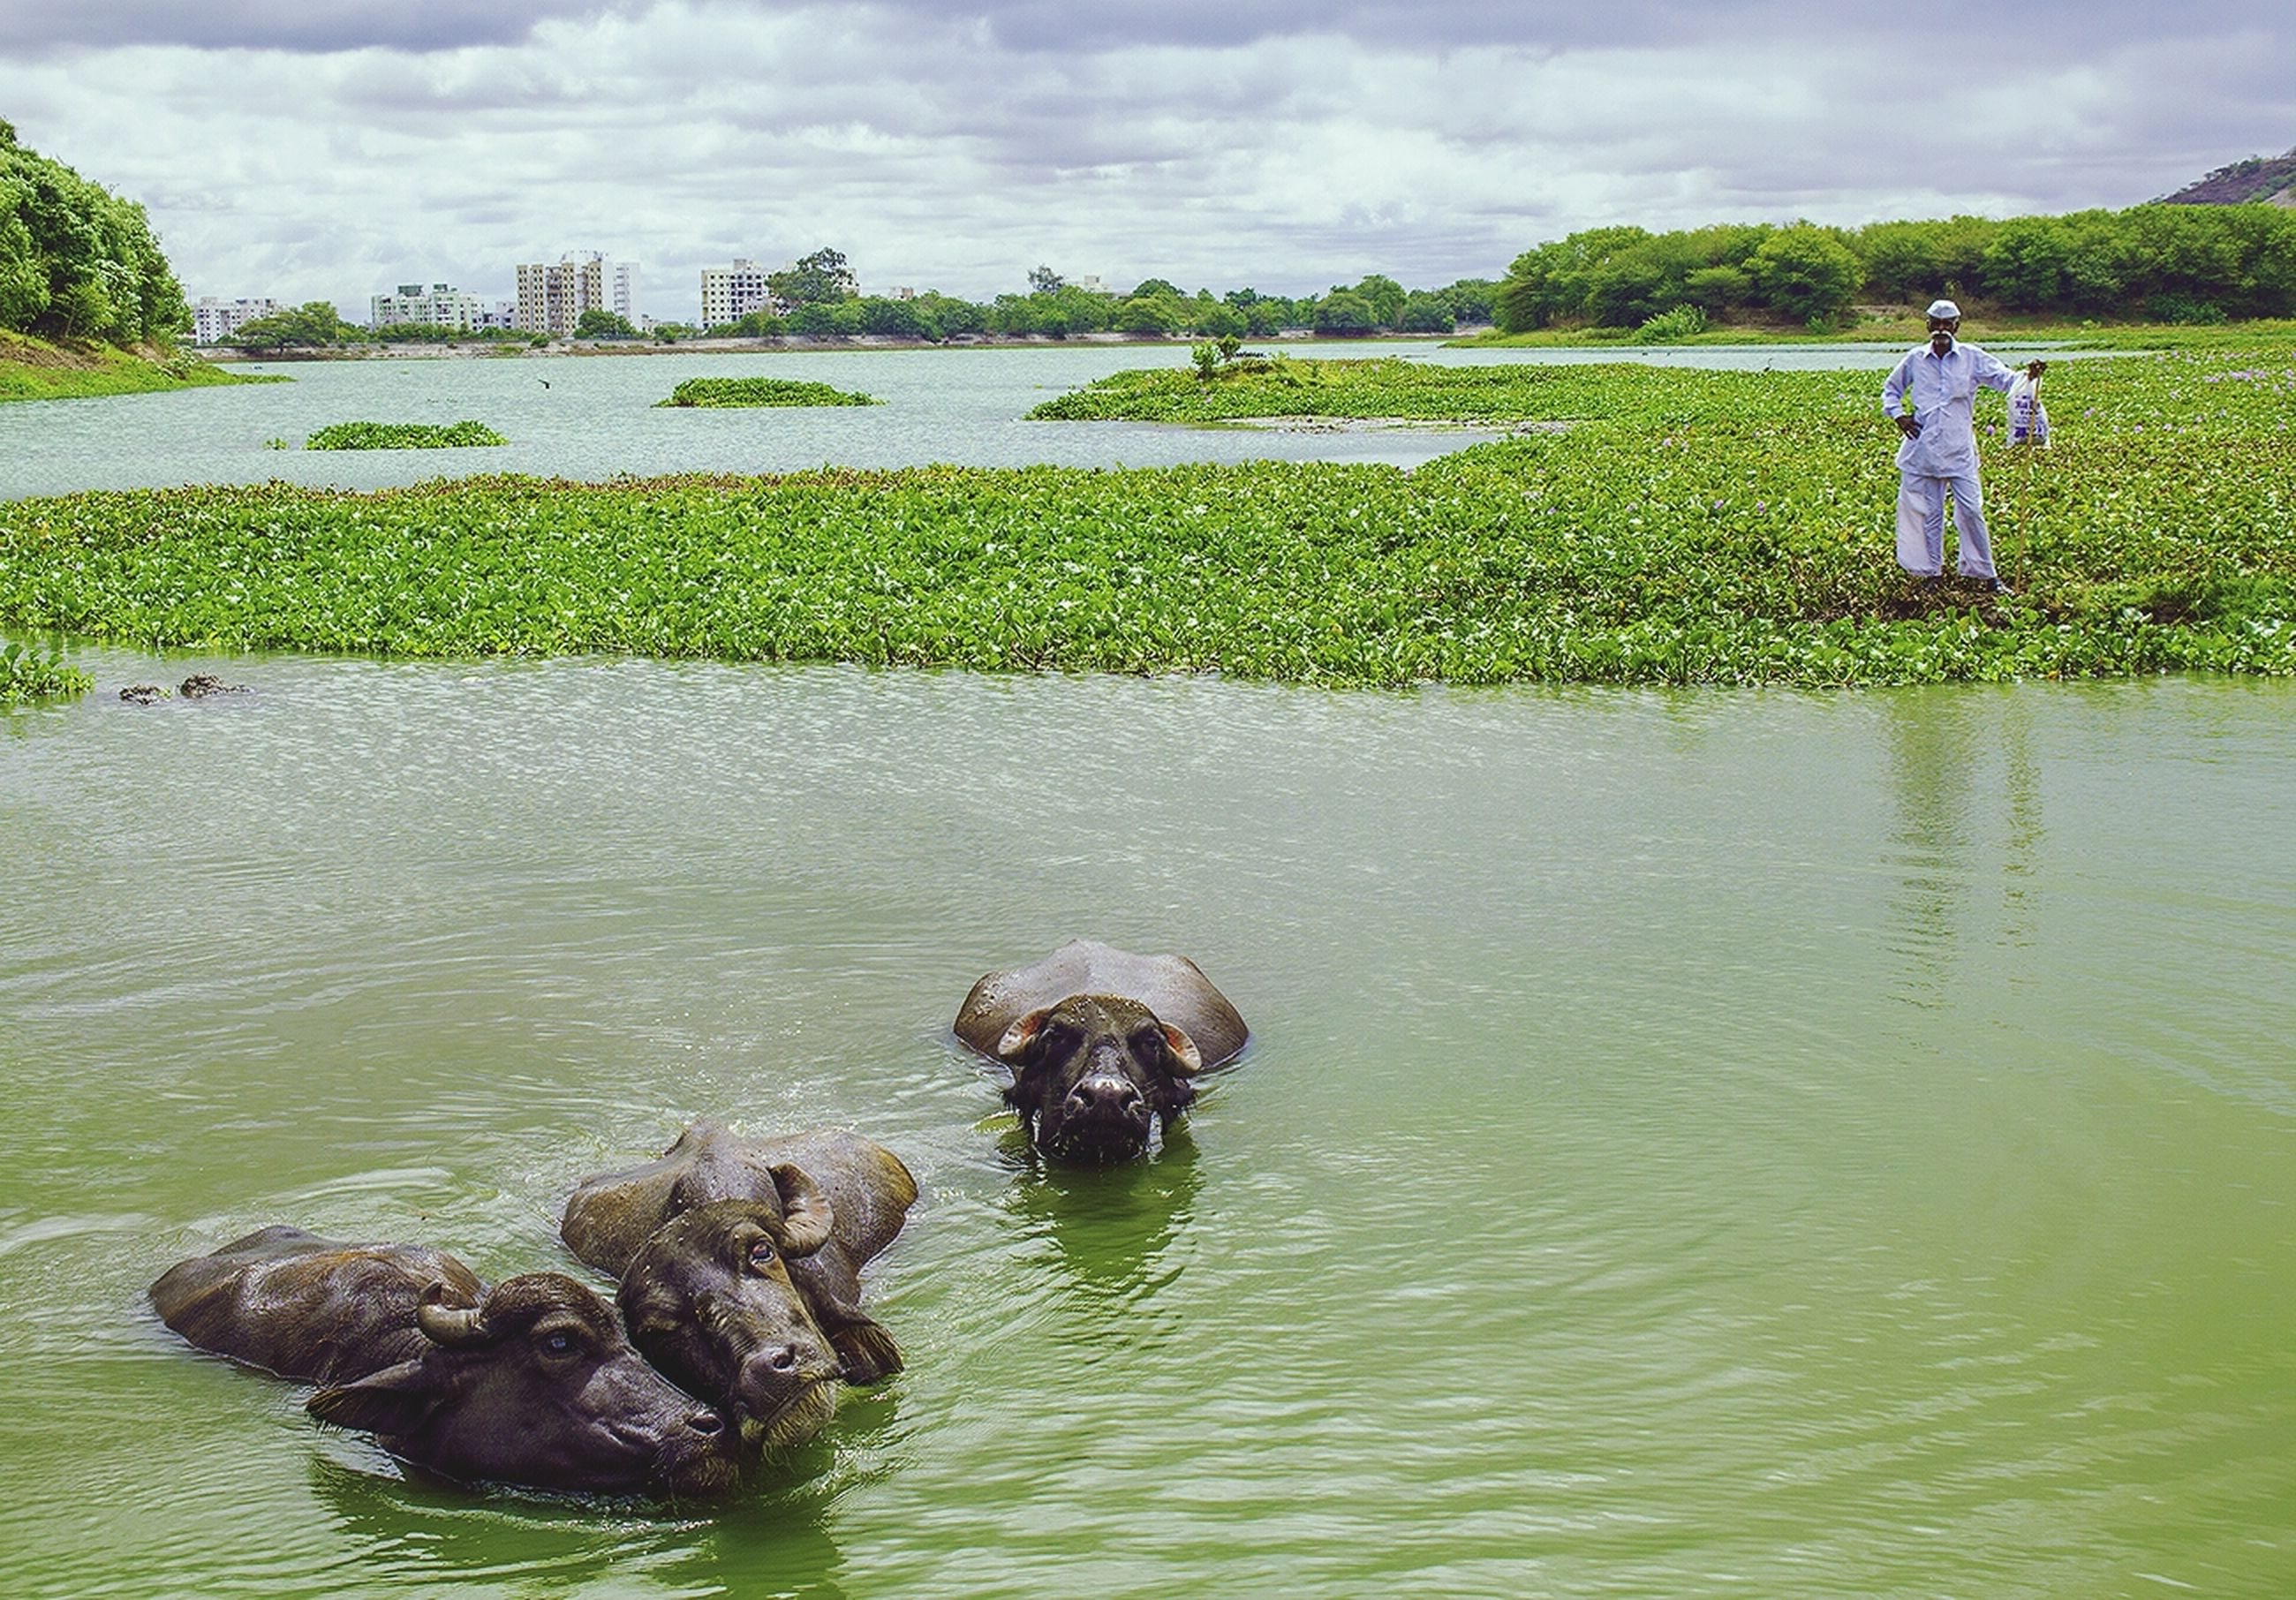 water, sky, cloud - sky, grass, lake, rippled, nature, waterfront, tranquility, green color, tranquil scene, reflection, cloud, beauty in nature, day, cloudy, scenics, outdoors, river, dog